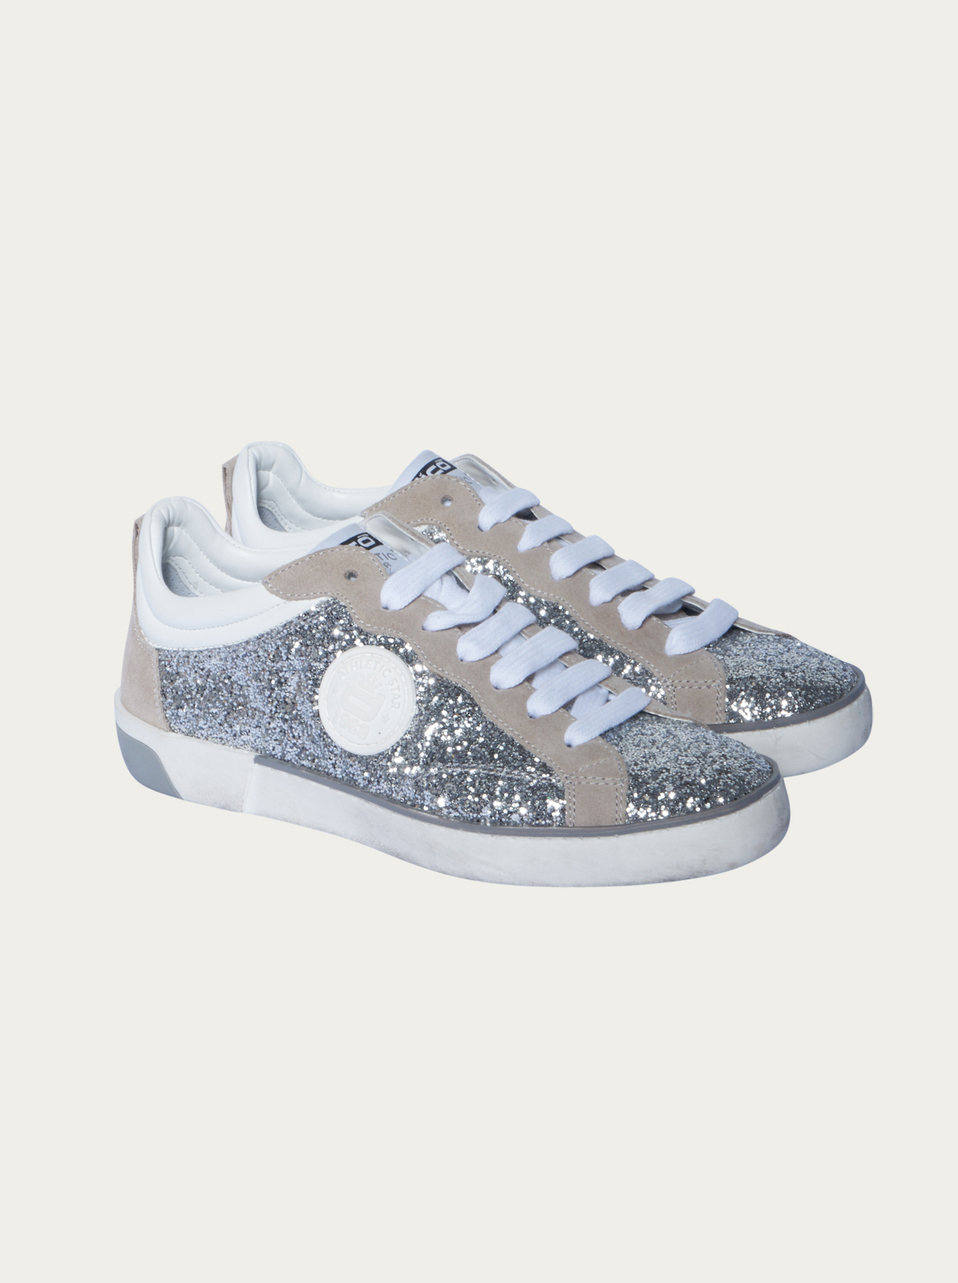 schuhe corvari sneaker mit glitzer optik in silber. Black Bedroom Furniture Sets. Home Design Ideas